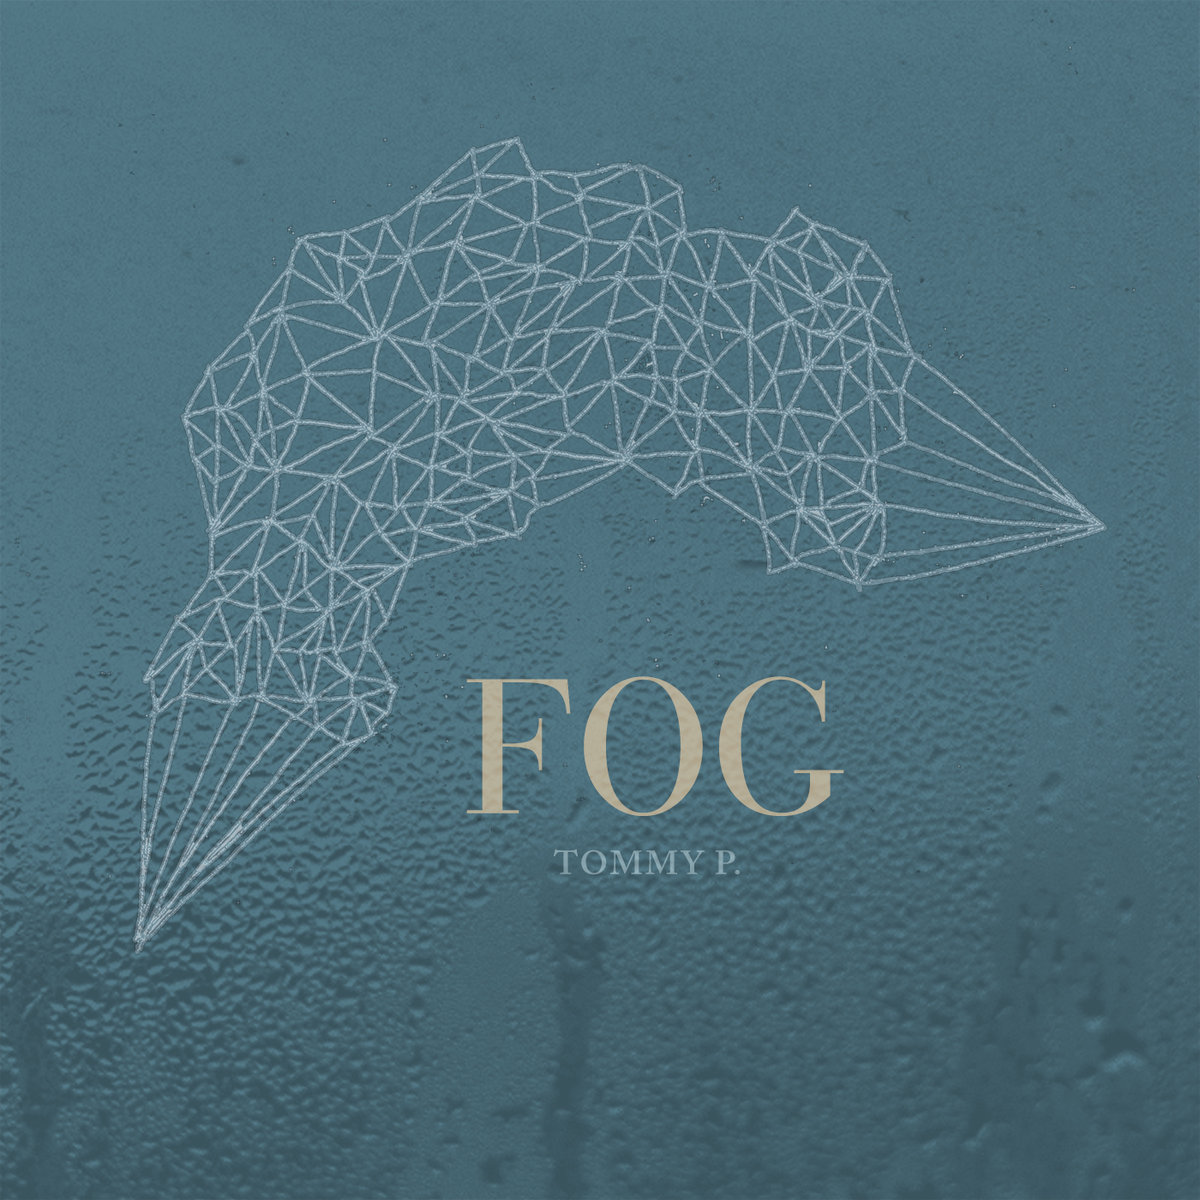 Tommy P. - Farallon Island @ 'Fog' album (11th ave records, 11thaverecords 11th avenue)